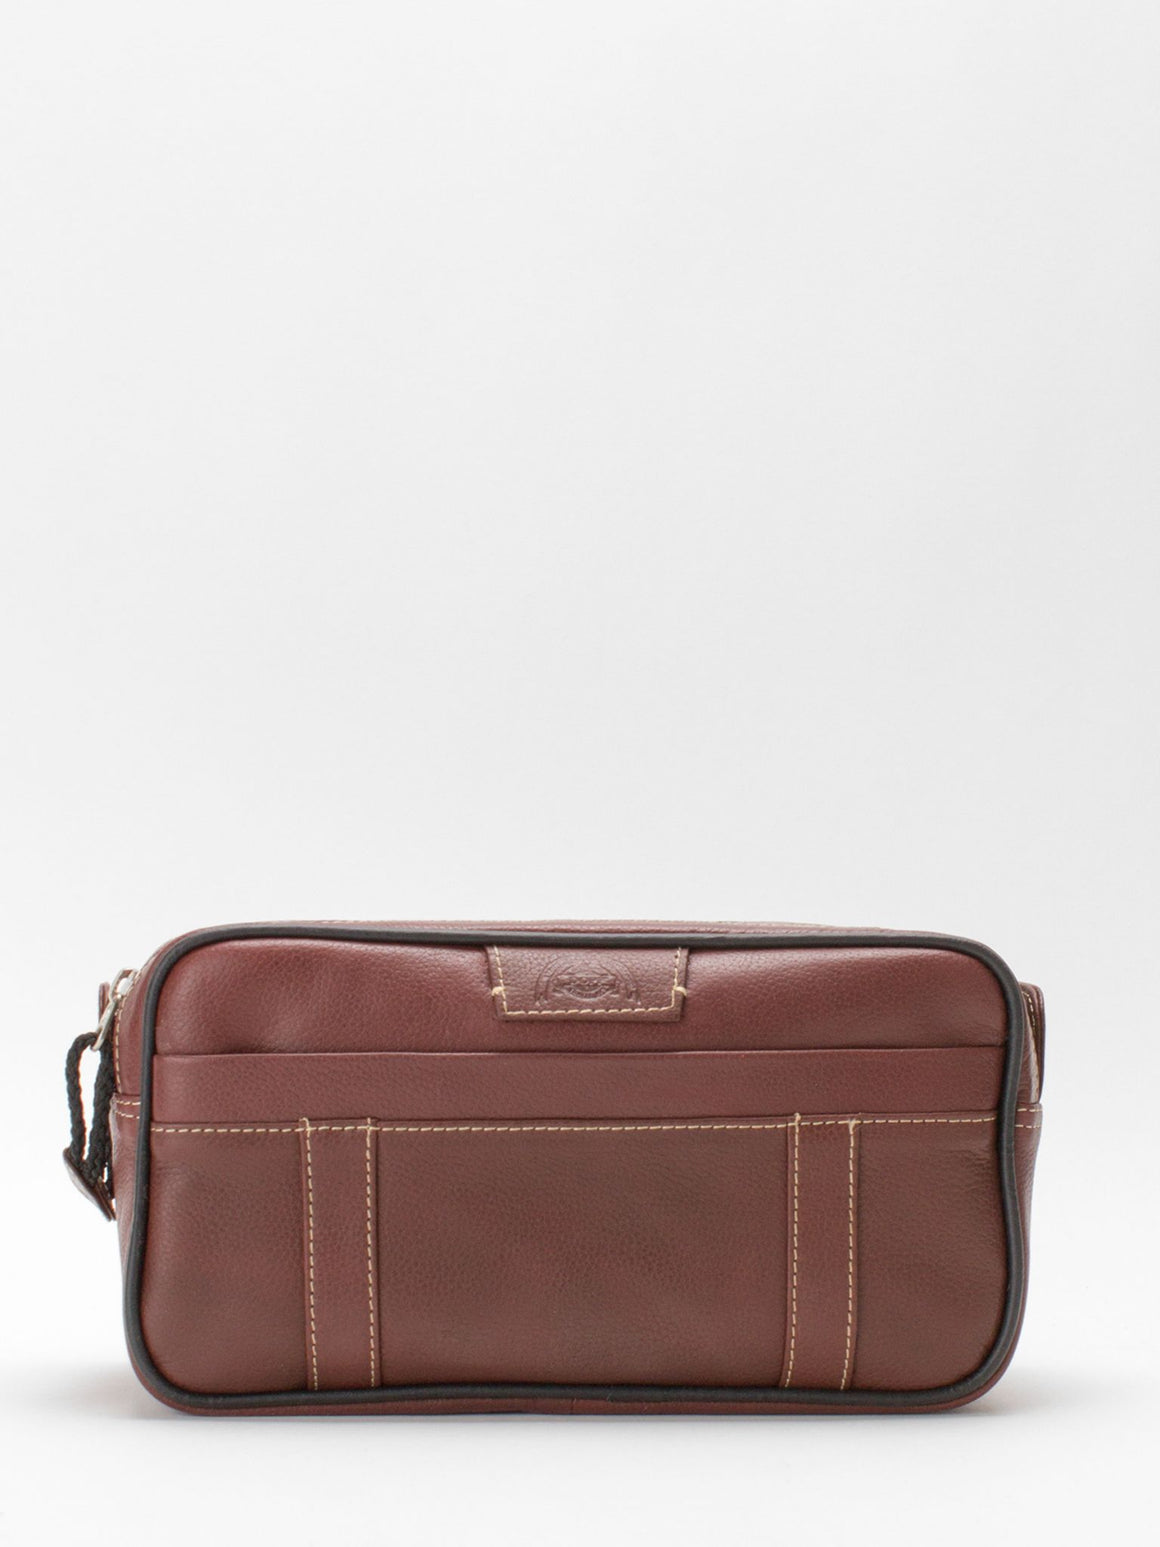 Owen Leather Toiletry Bag - Brown